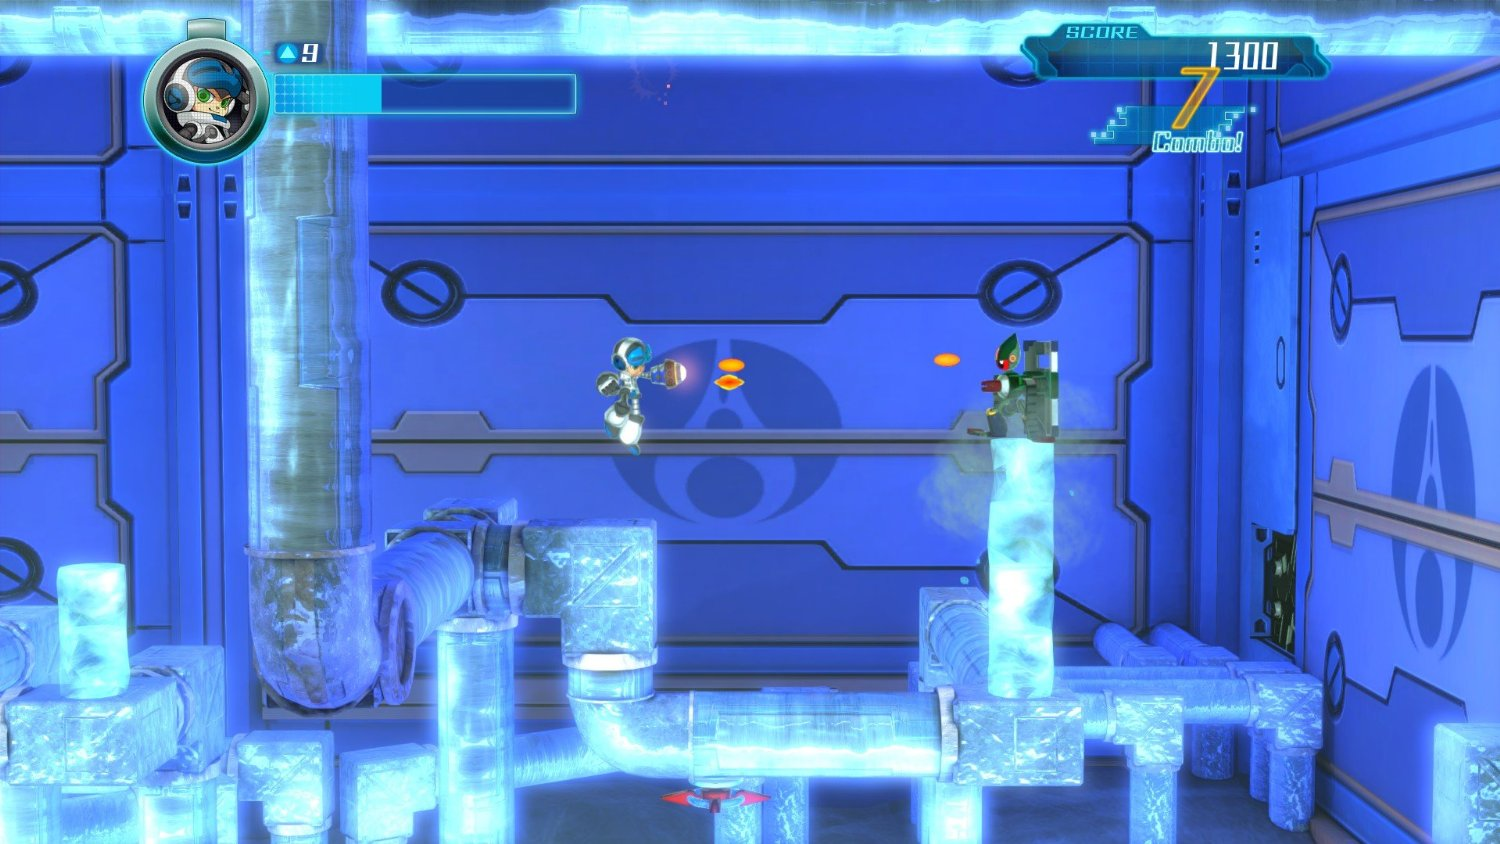 Download Mighty No. 9 Pc